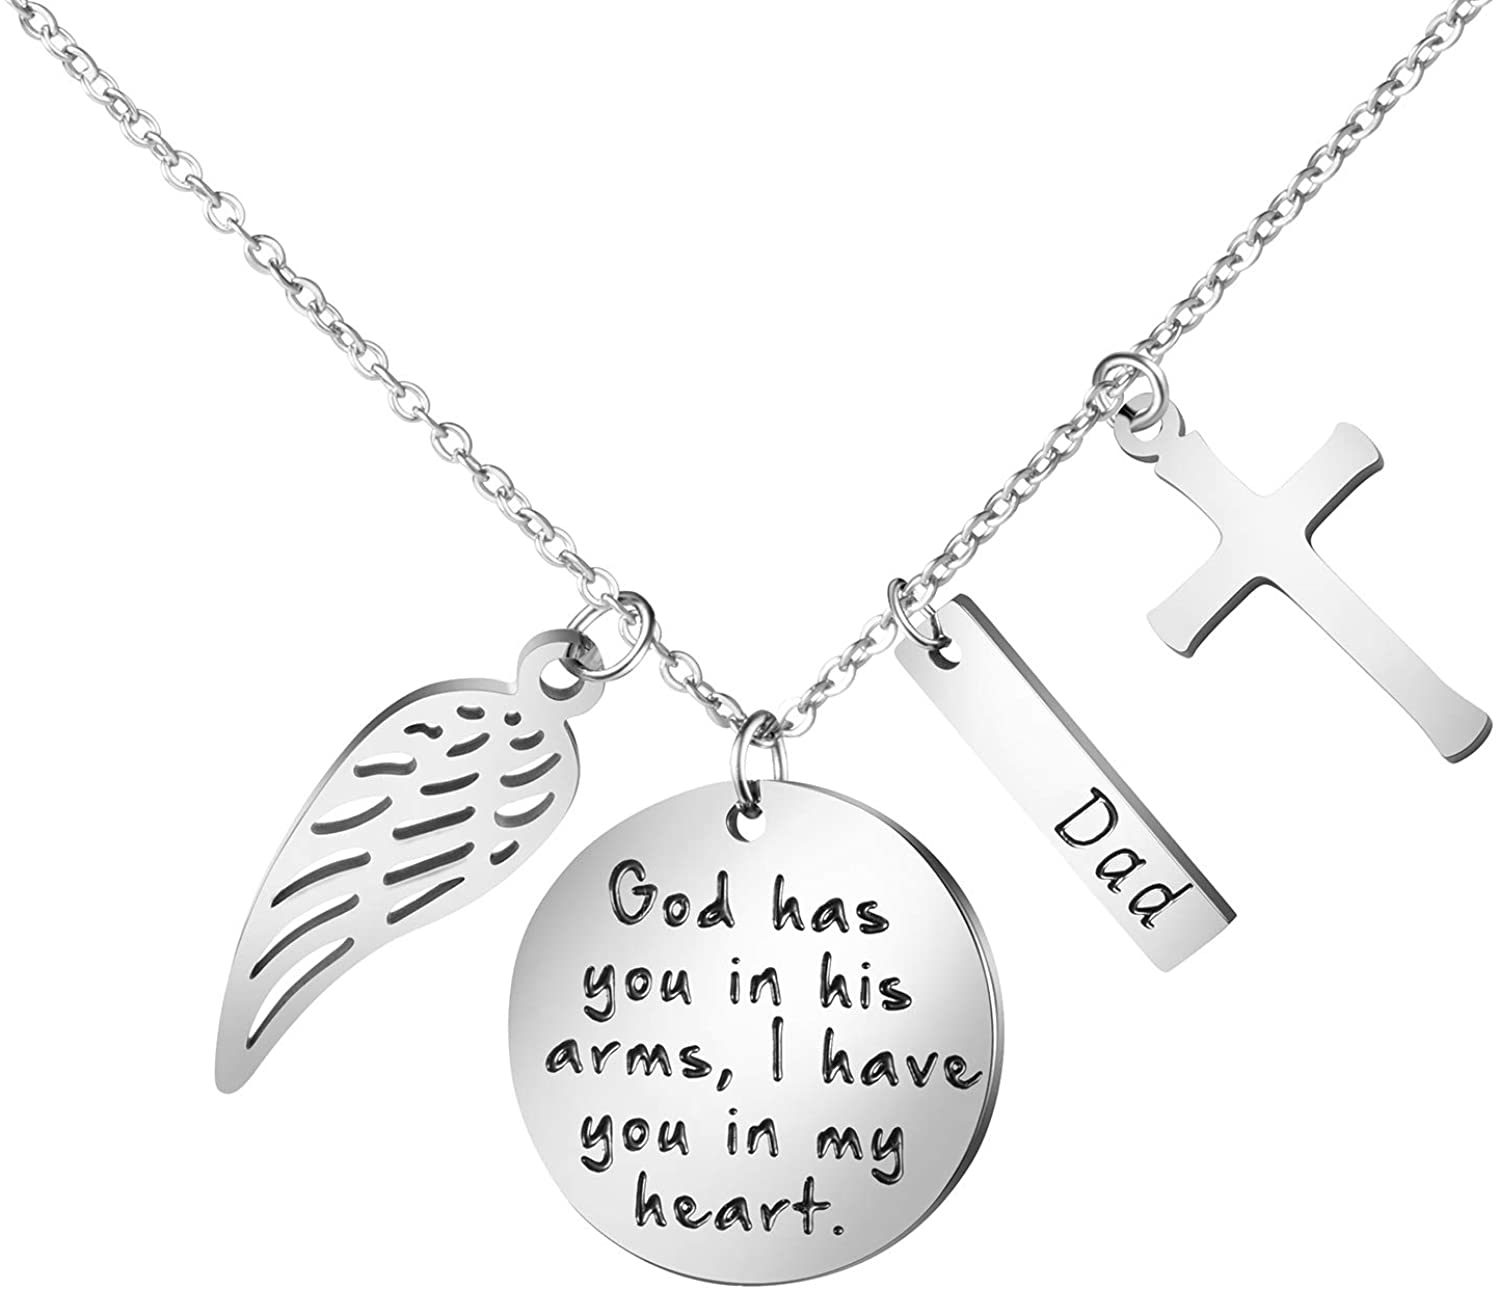 Joycuff Personalized Memorial Necklace Sympathy Gifts for Women Teen Girls Loss of Loved One Remembrance Jewelry Angel Wings Cross Charm Silver Stainless Steel Pendant